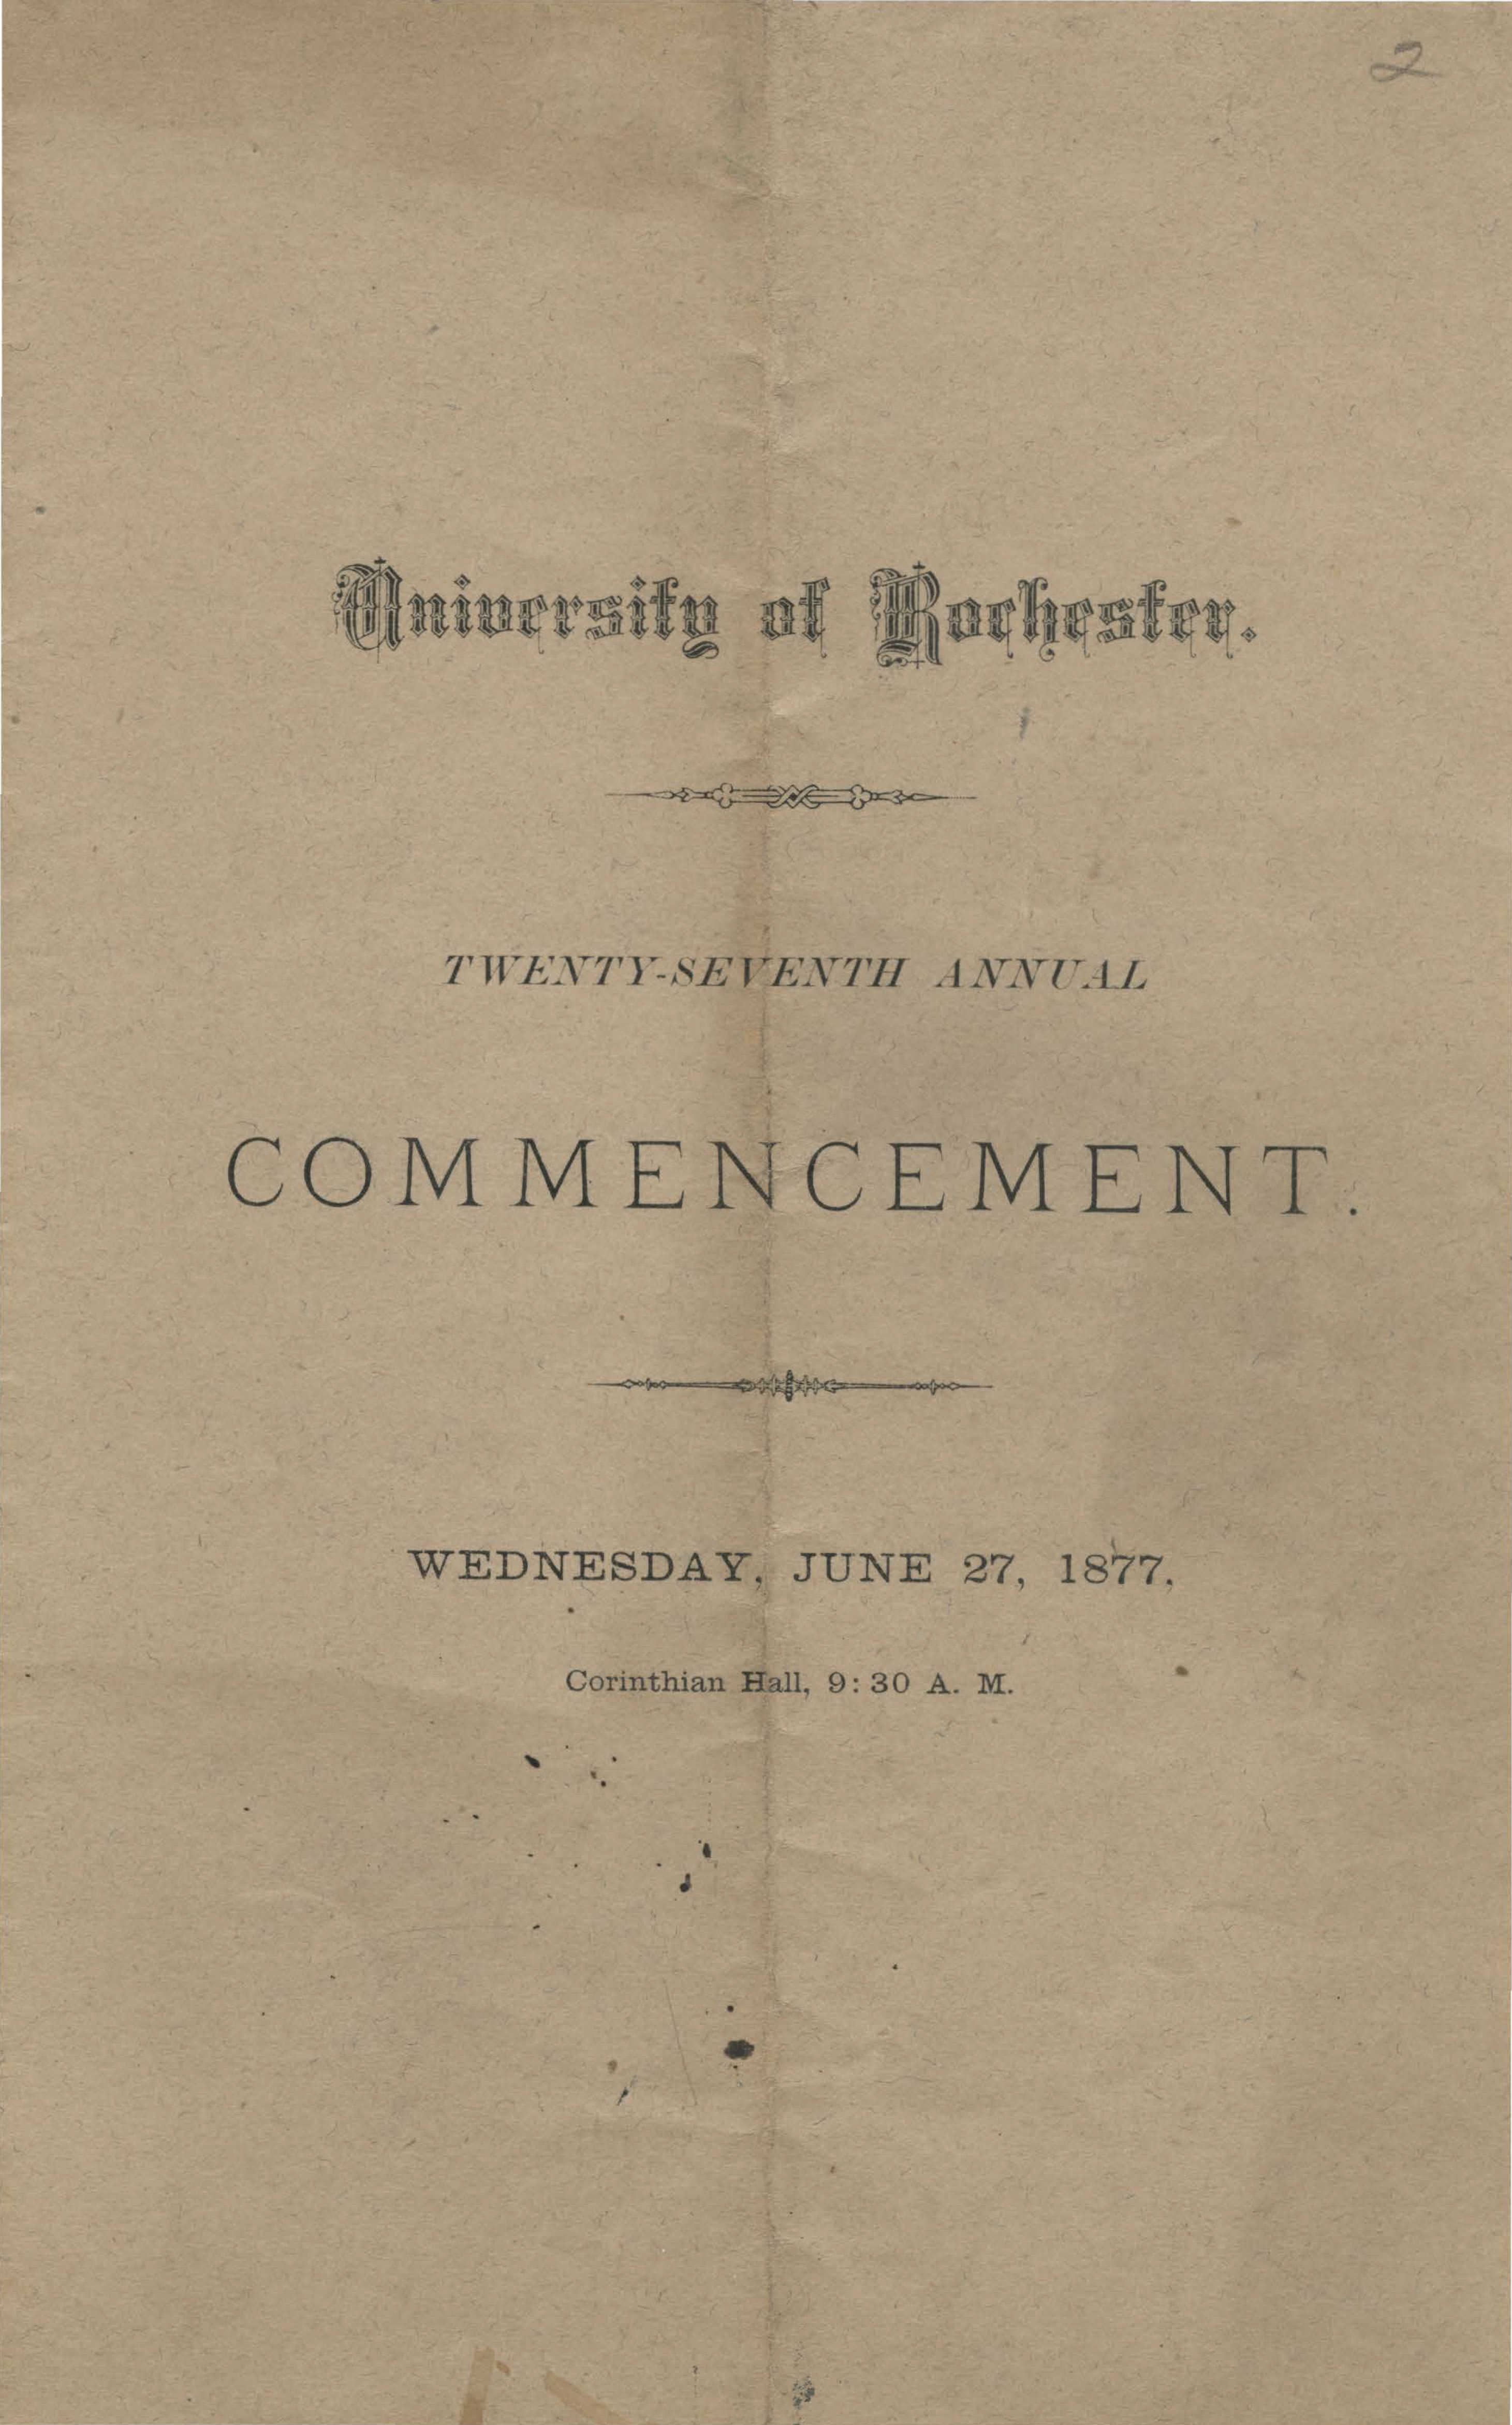 Commencement program, 1877